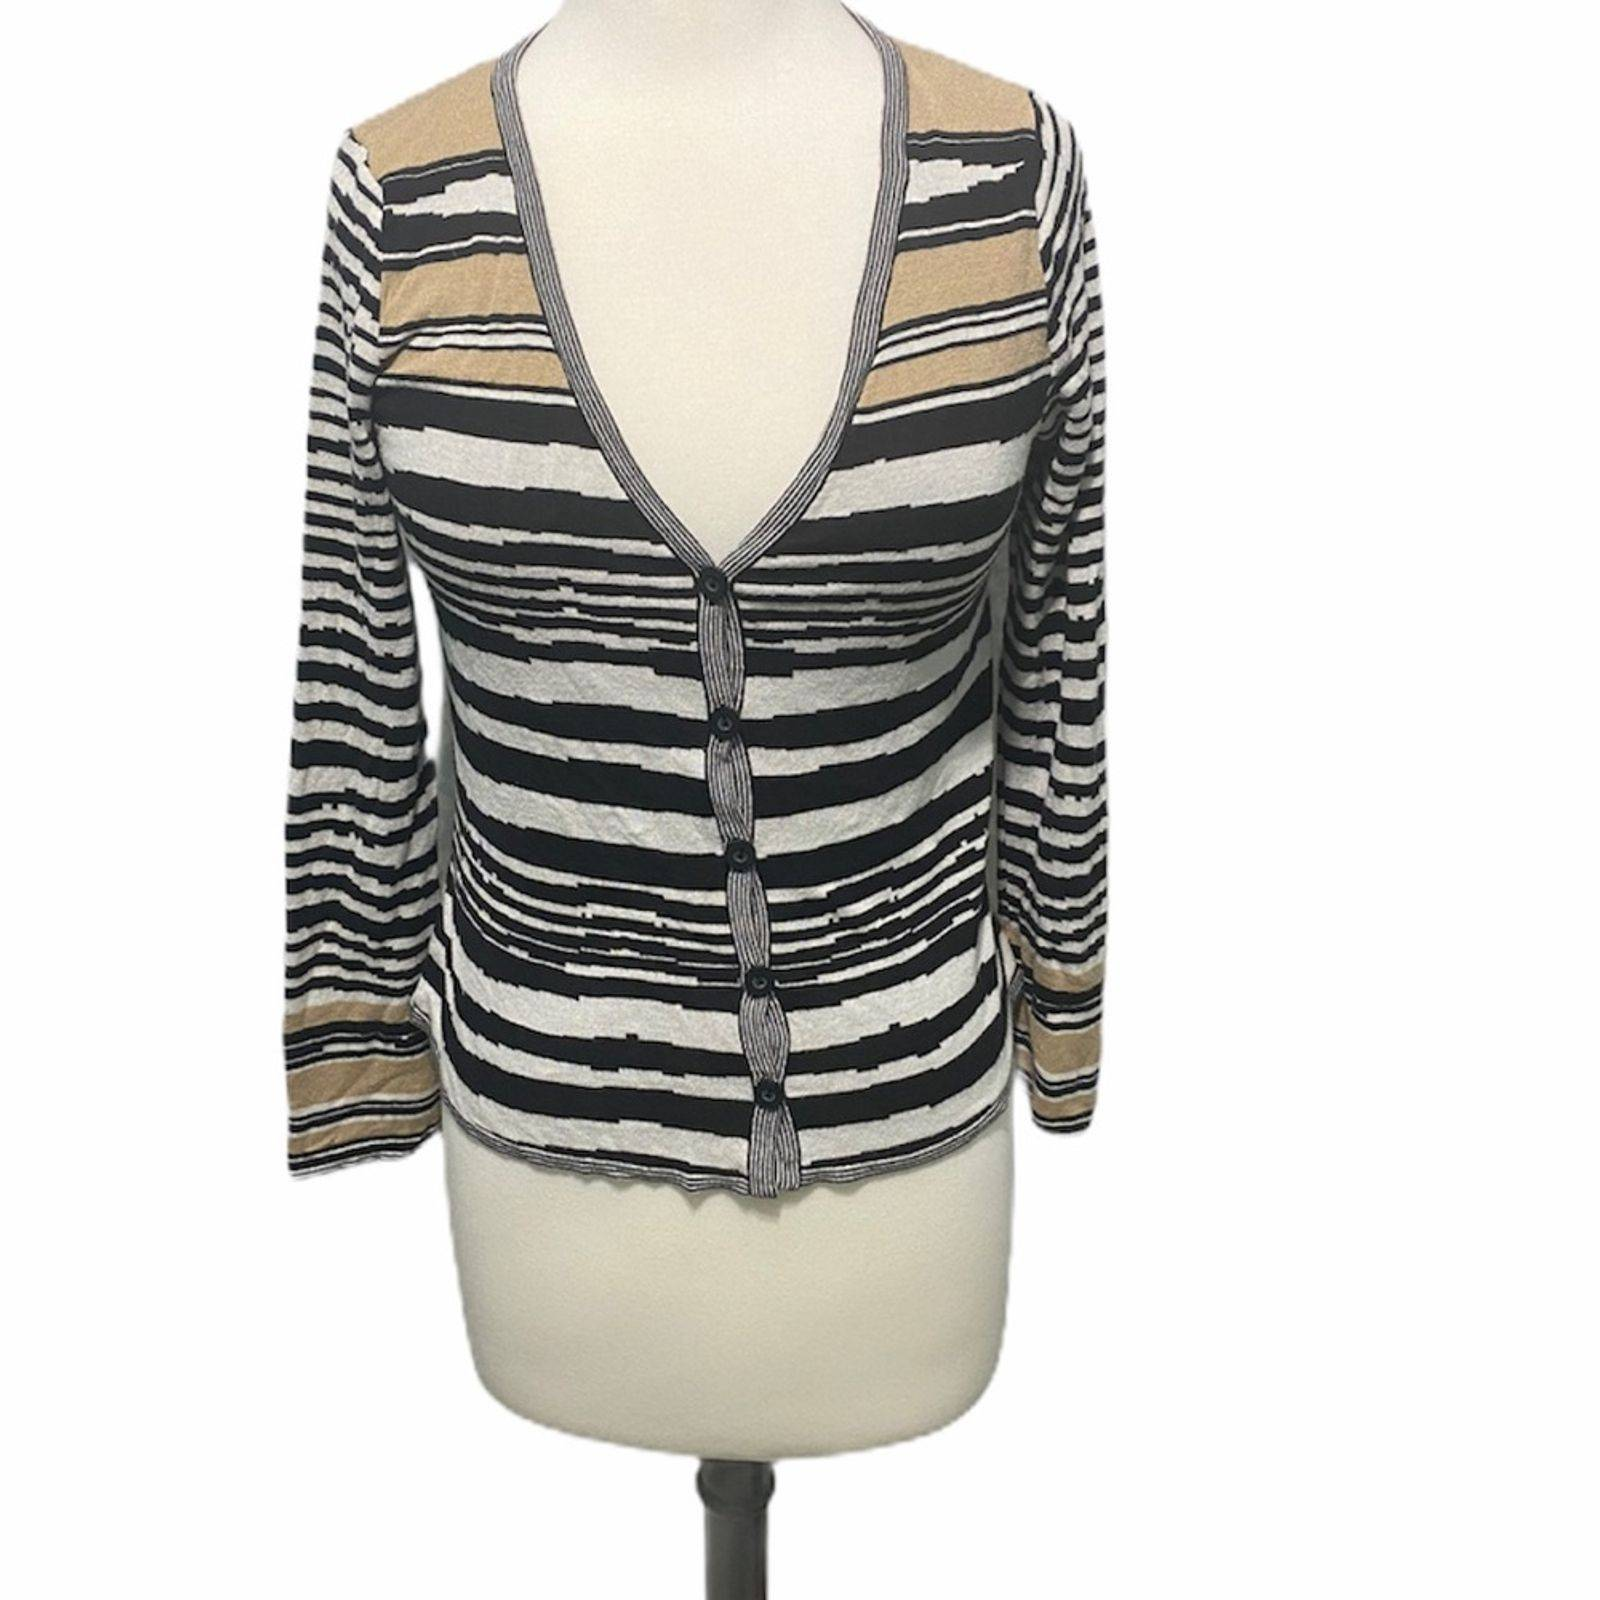 Apostrophe cardigan striped black white